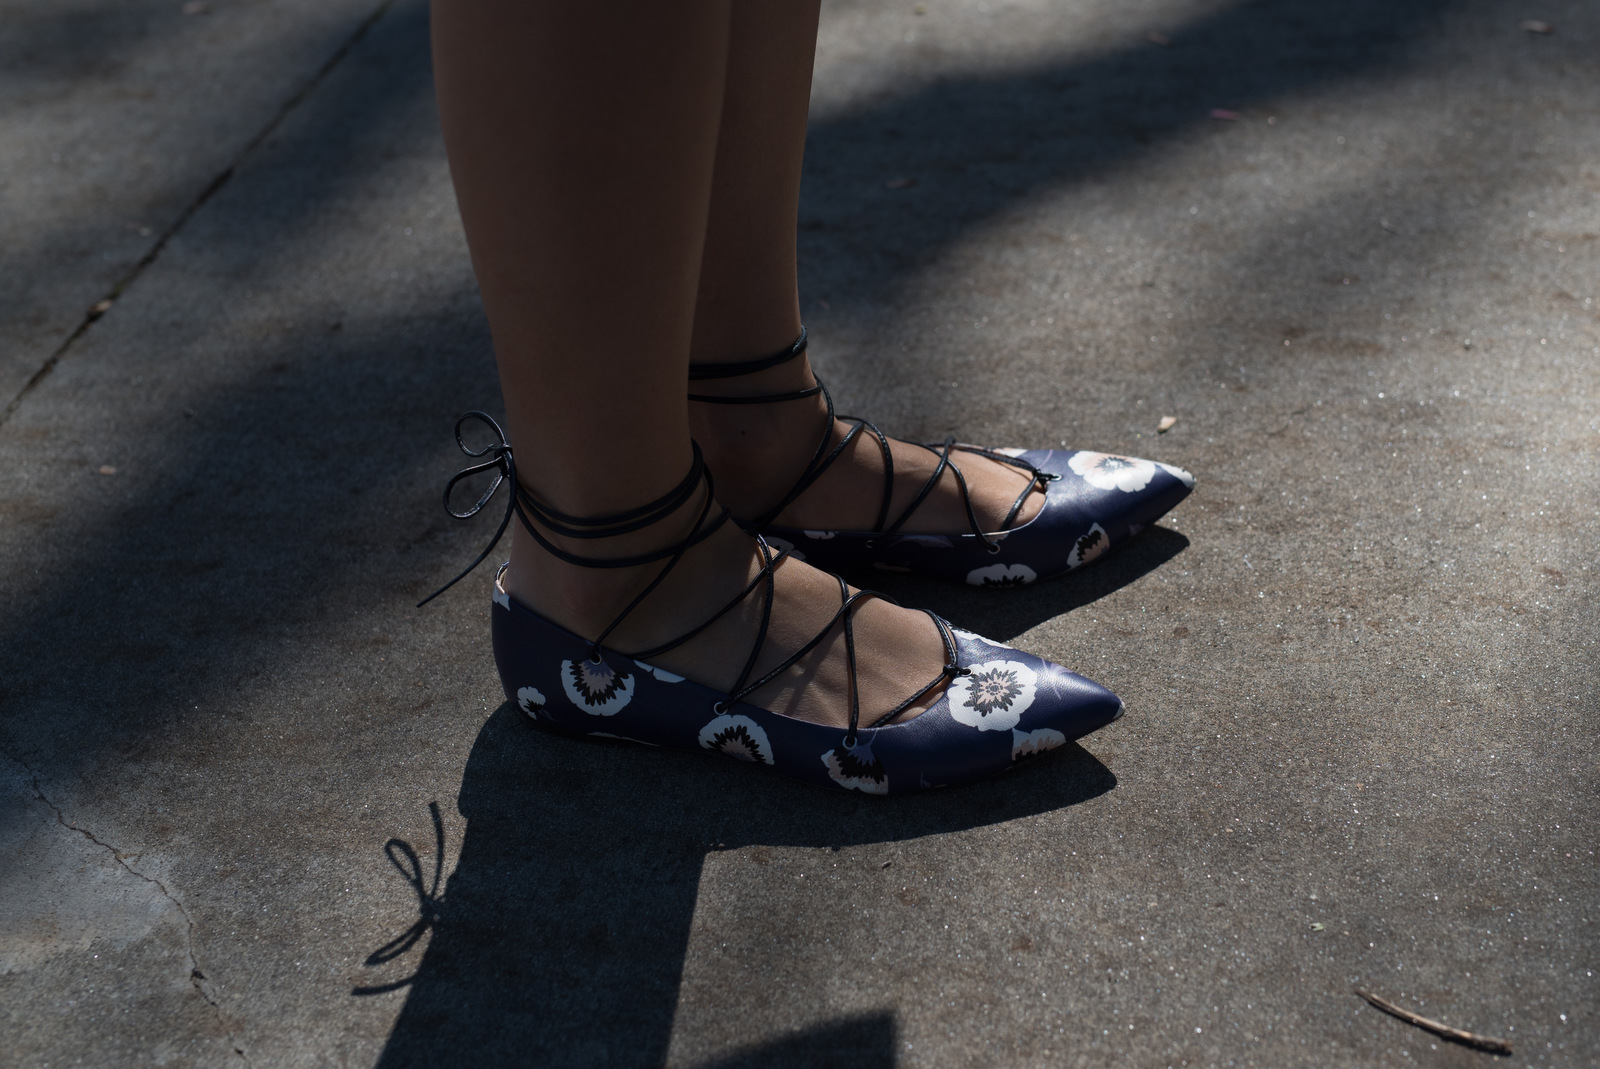 The shoes are from J. Crew. She was in such a hurry for class that I didn't get her name.